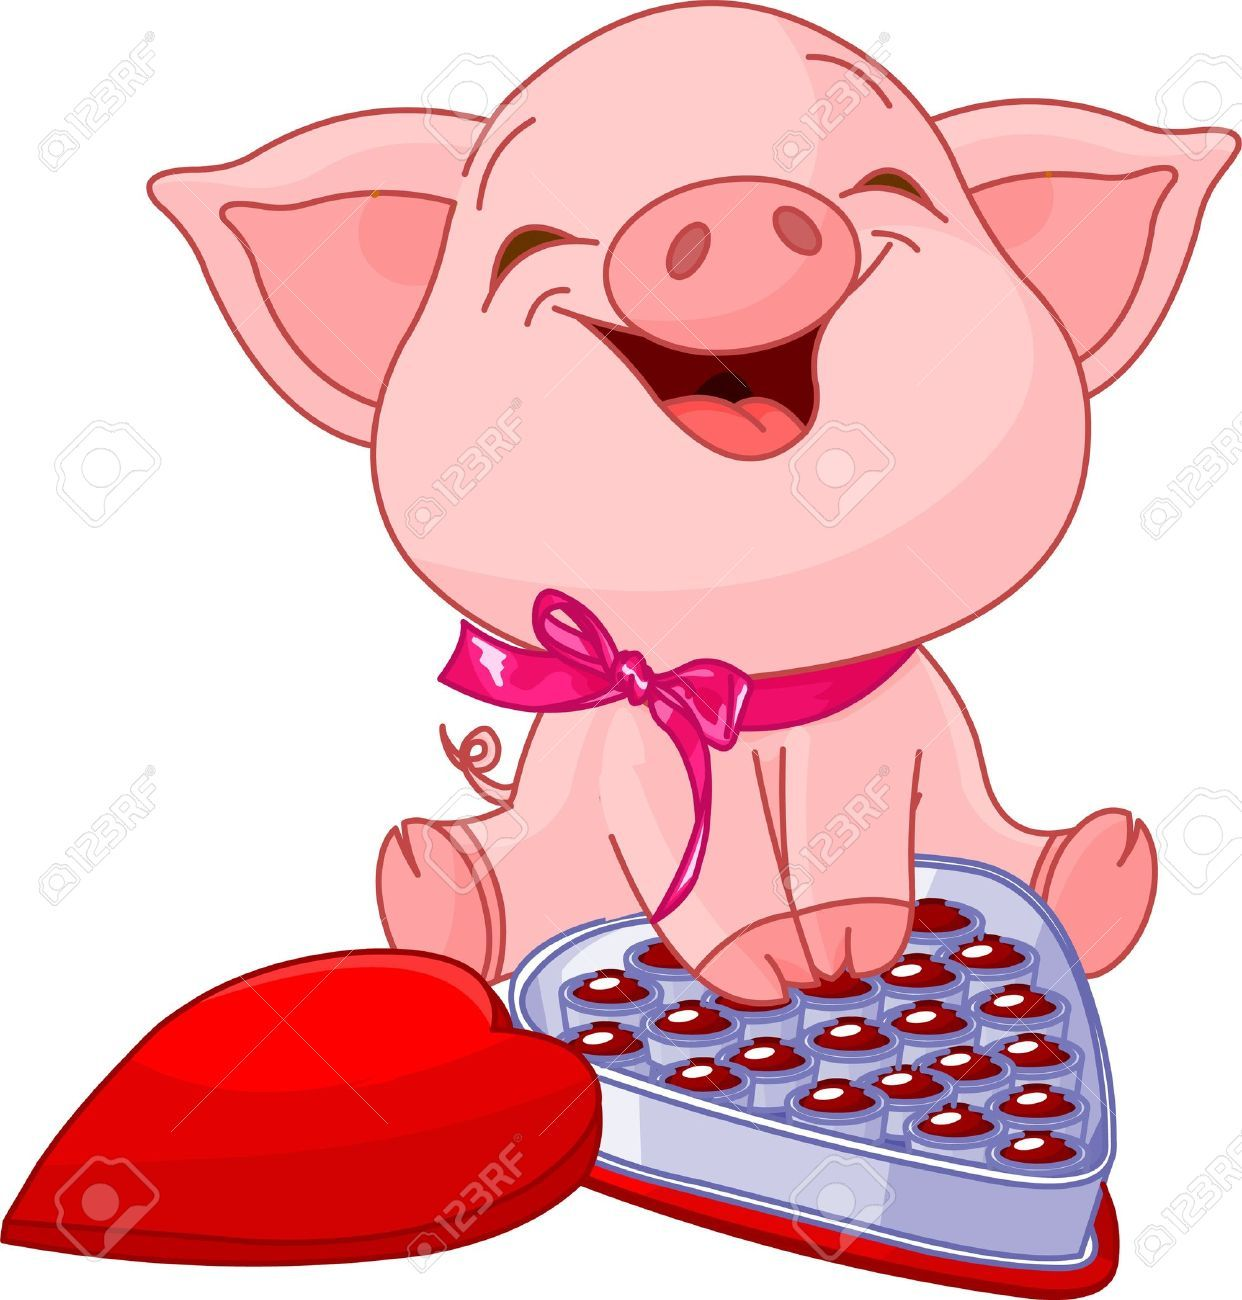 Pin by Alesia Leach on Pig   Pinterest for Pig Heart Cartoon  181obs